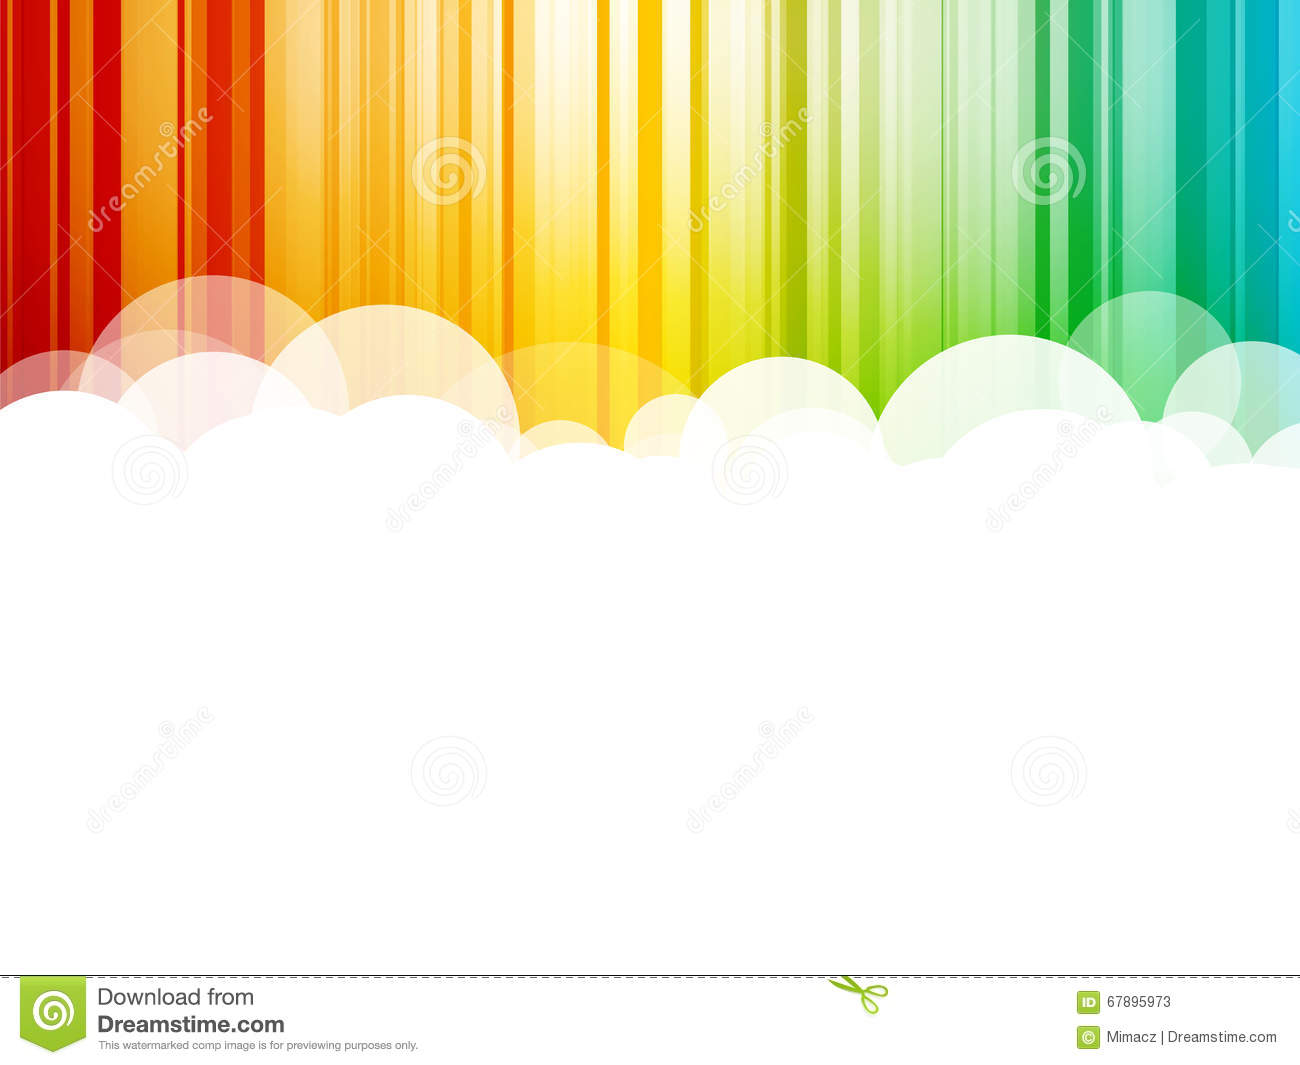 Clouds background colorful stripes